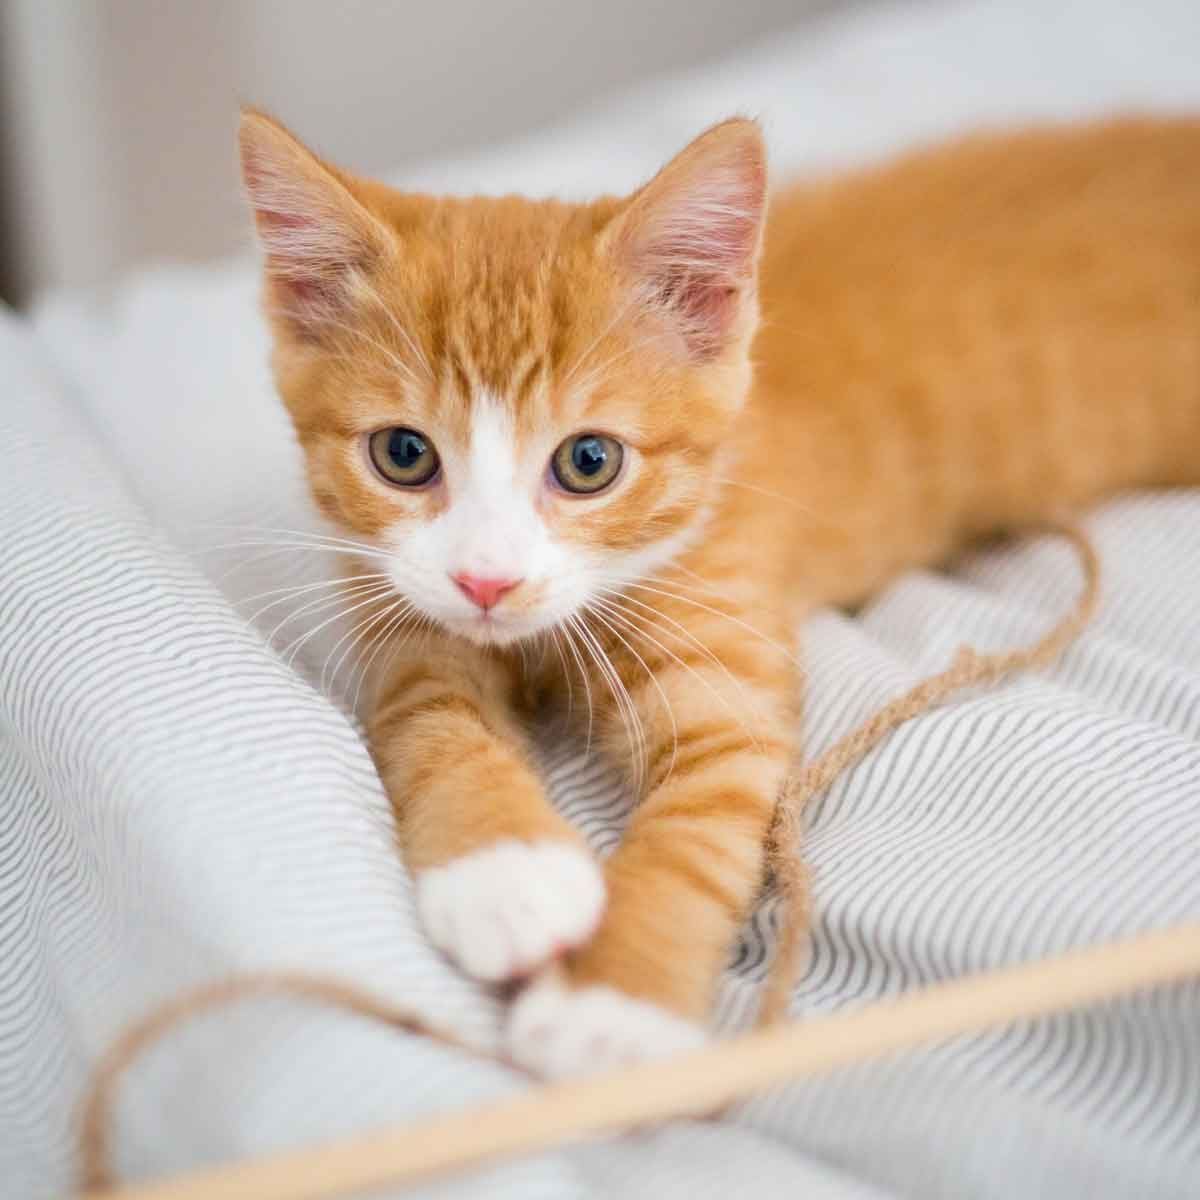 Diy Cat Toy Gettyimages 868495272